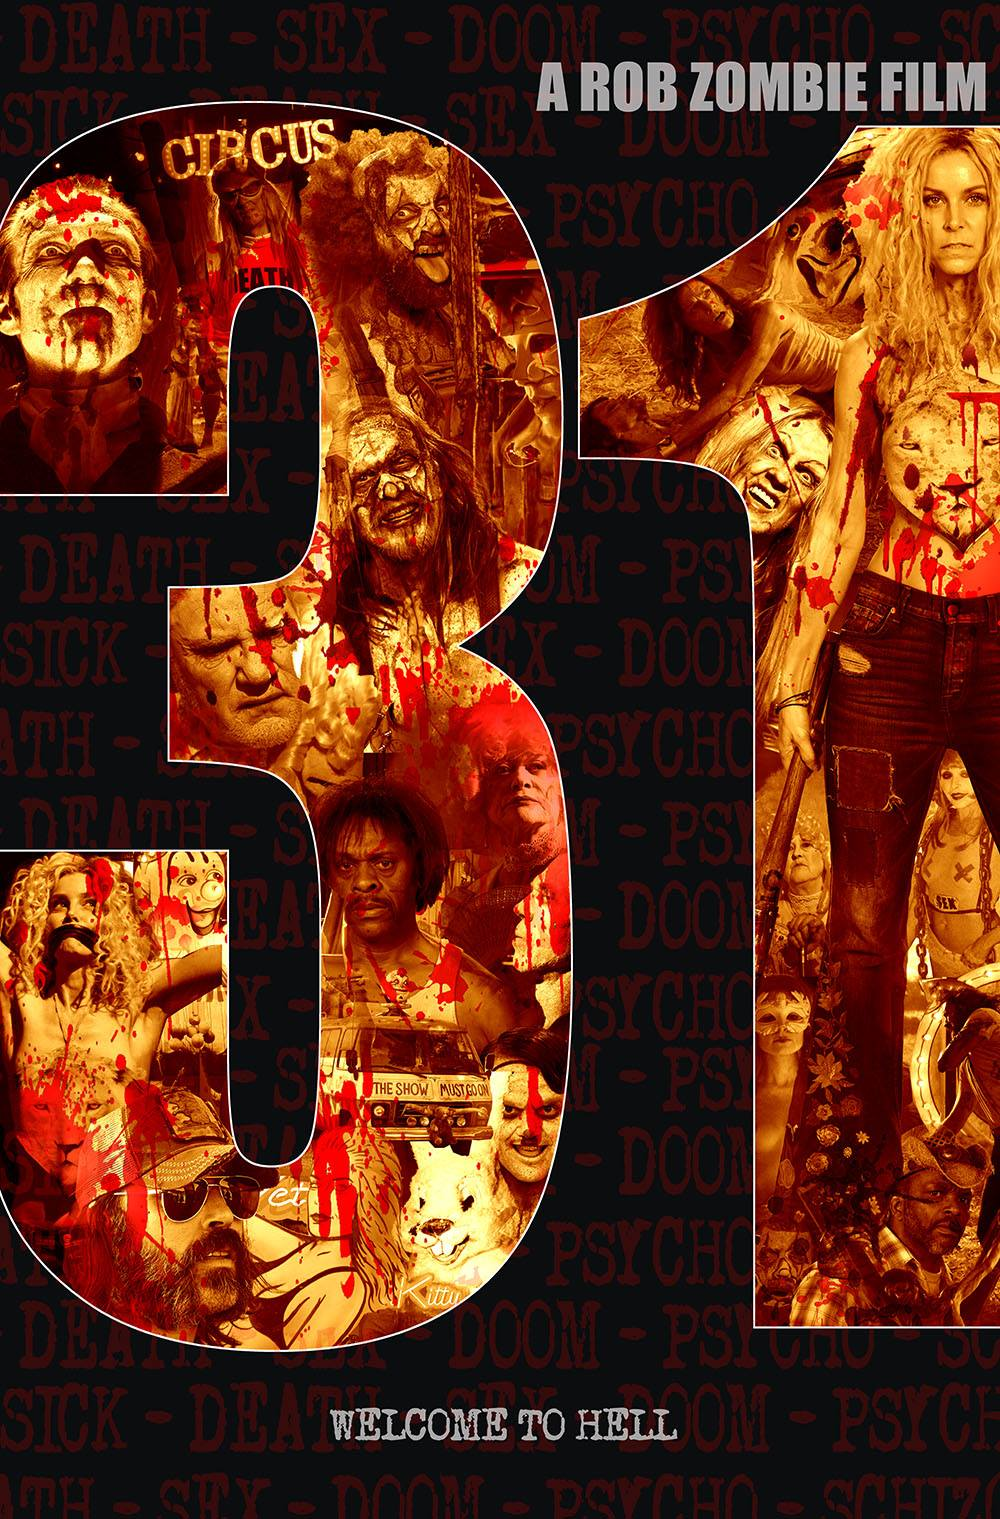 The Horrors of Halloween: Rob Zombie's 31 Poster and Stills